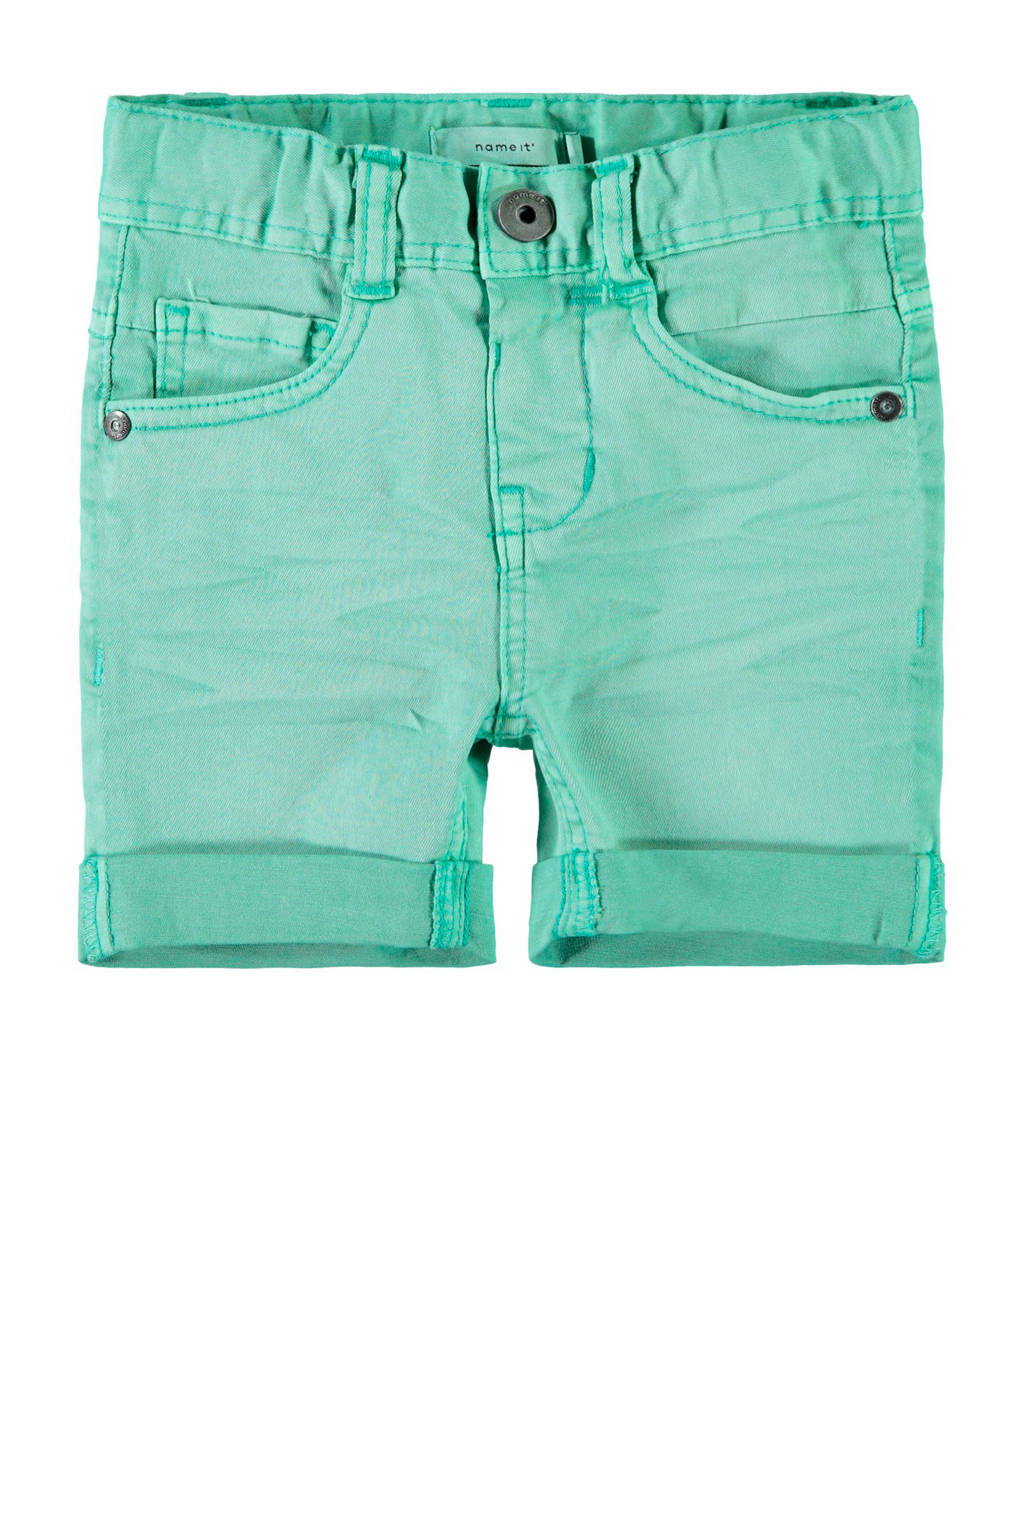 name it jeans bermuda Sofus, Turquoise